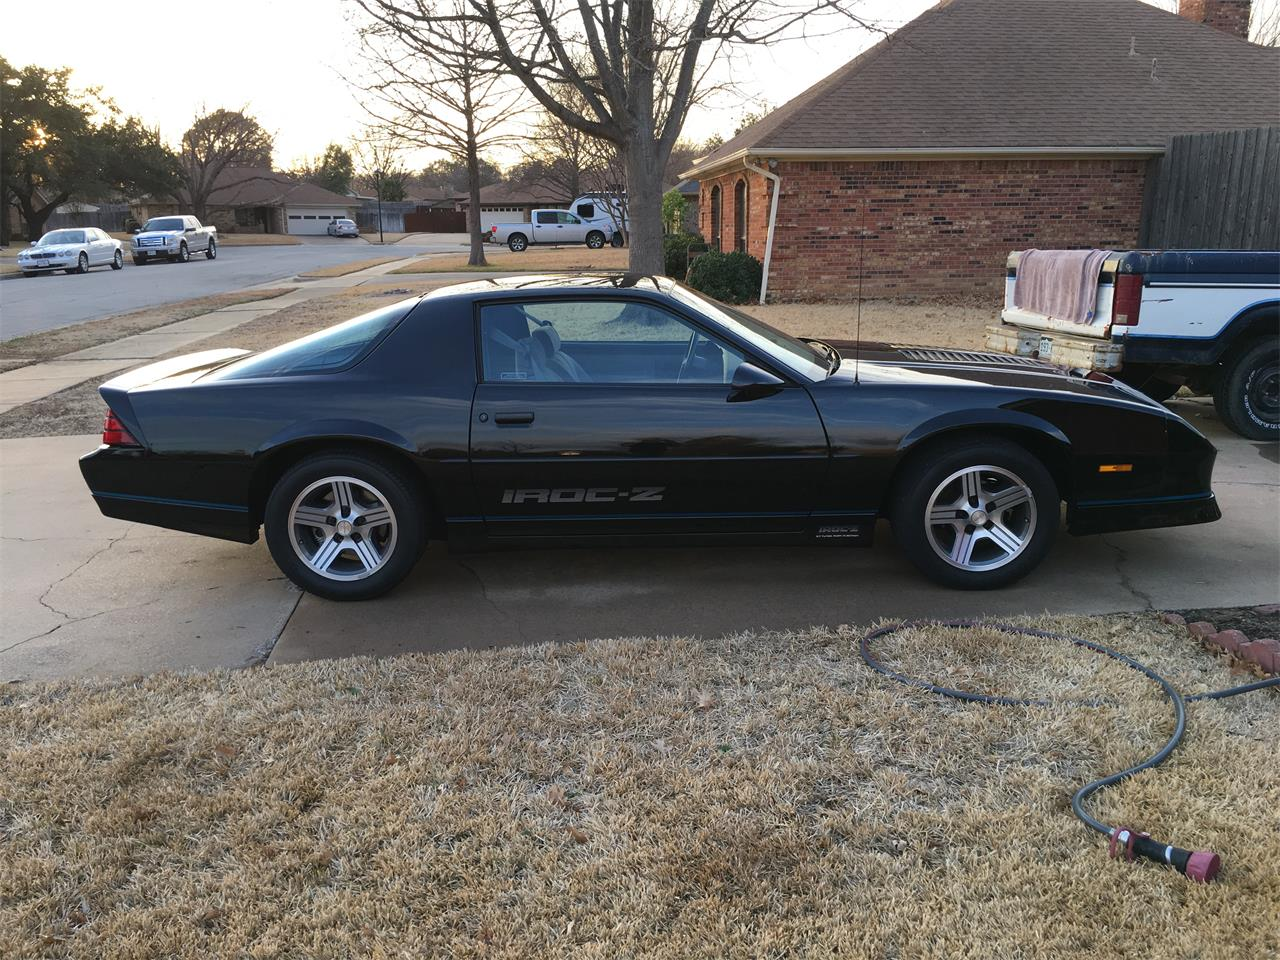 Large Picture of 1989 Chevrolet Camaro IROC Z28 - $25,000.00 Offered by a Private Seller - MZ5V